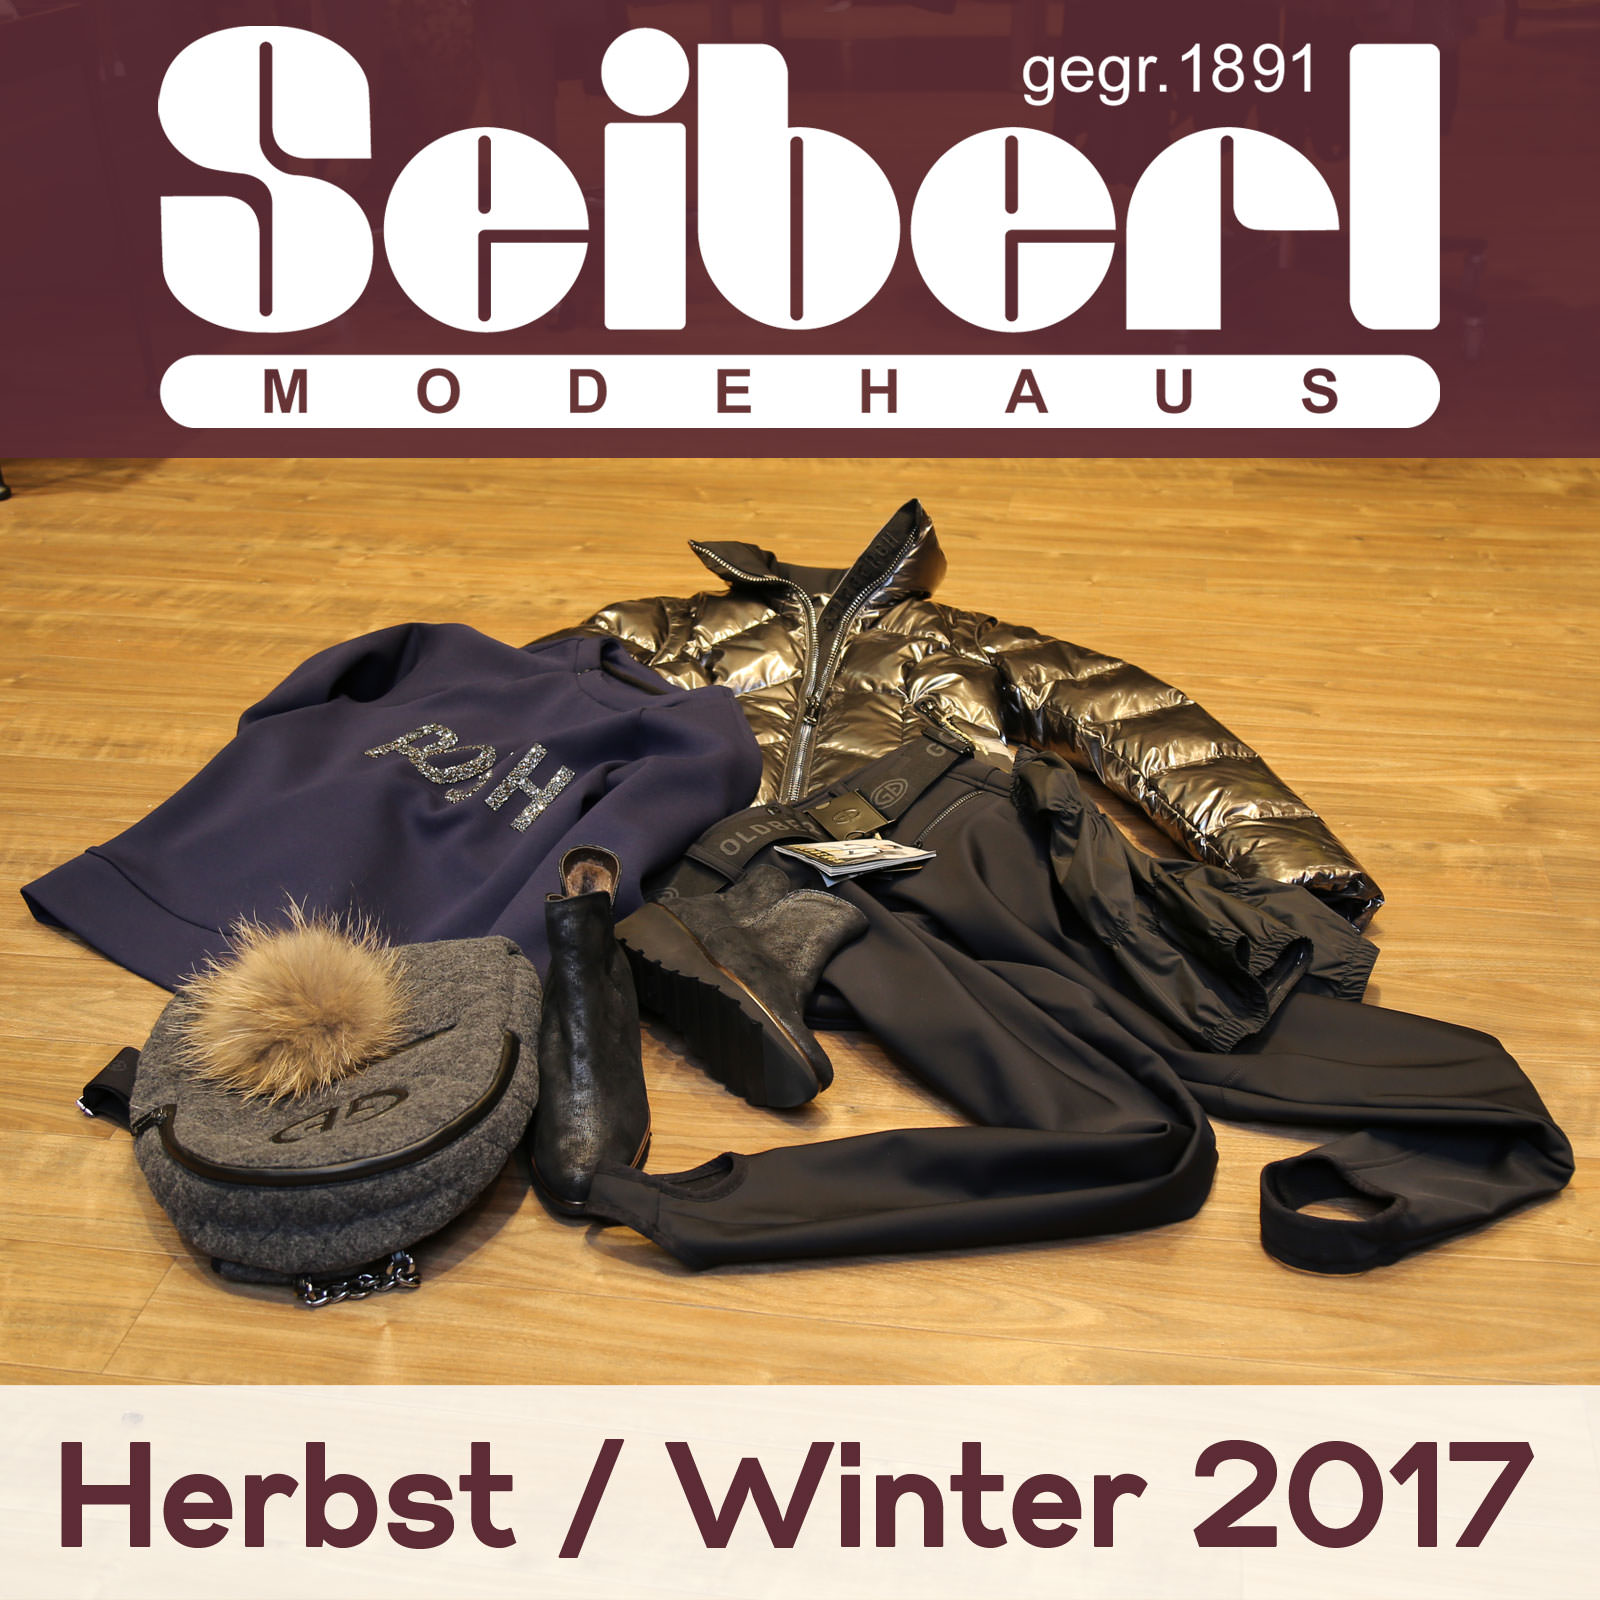 Herbst / Winter 2017